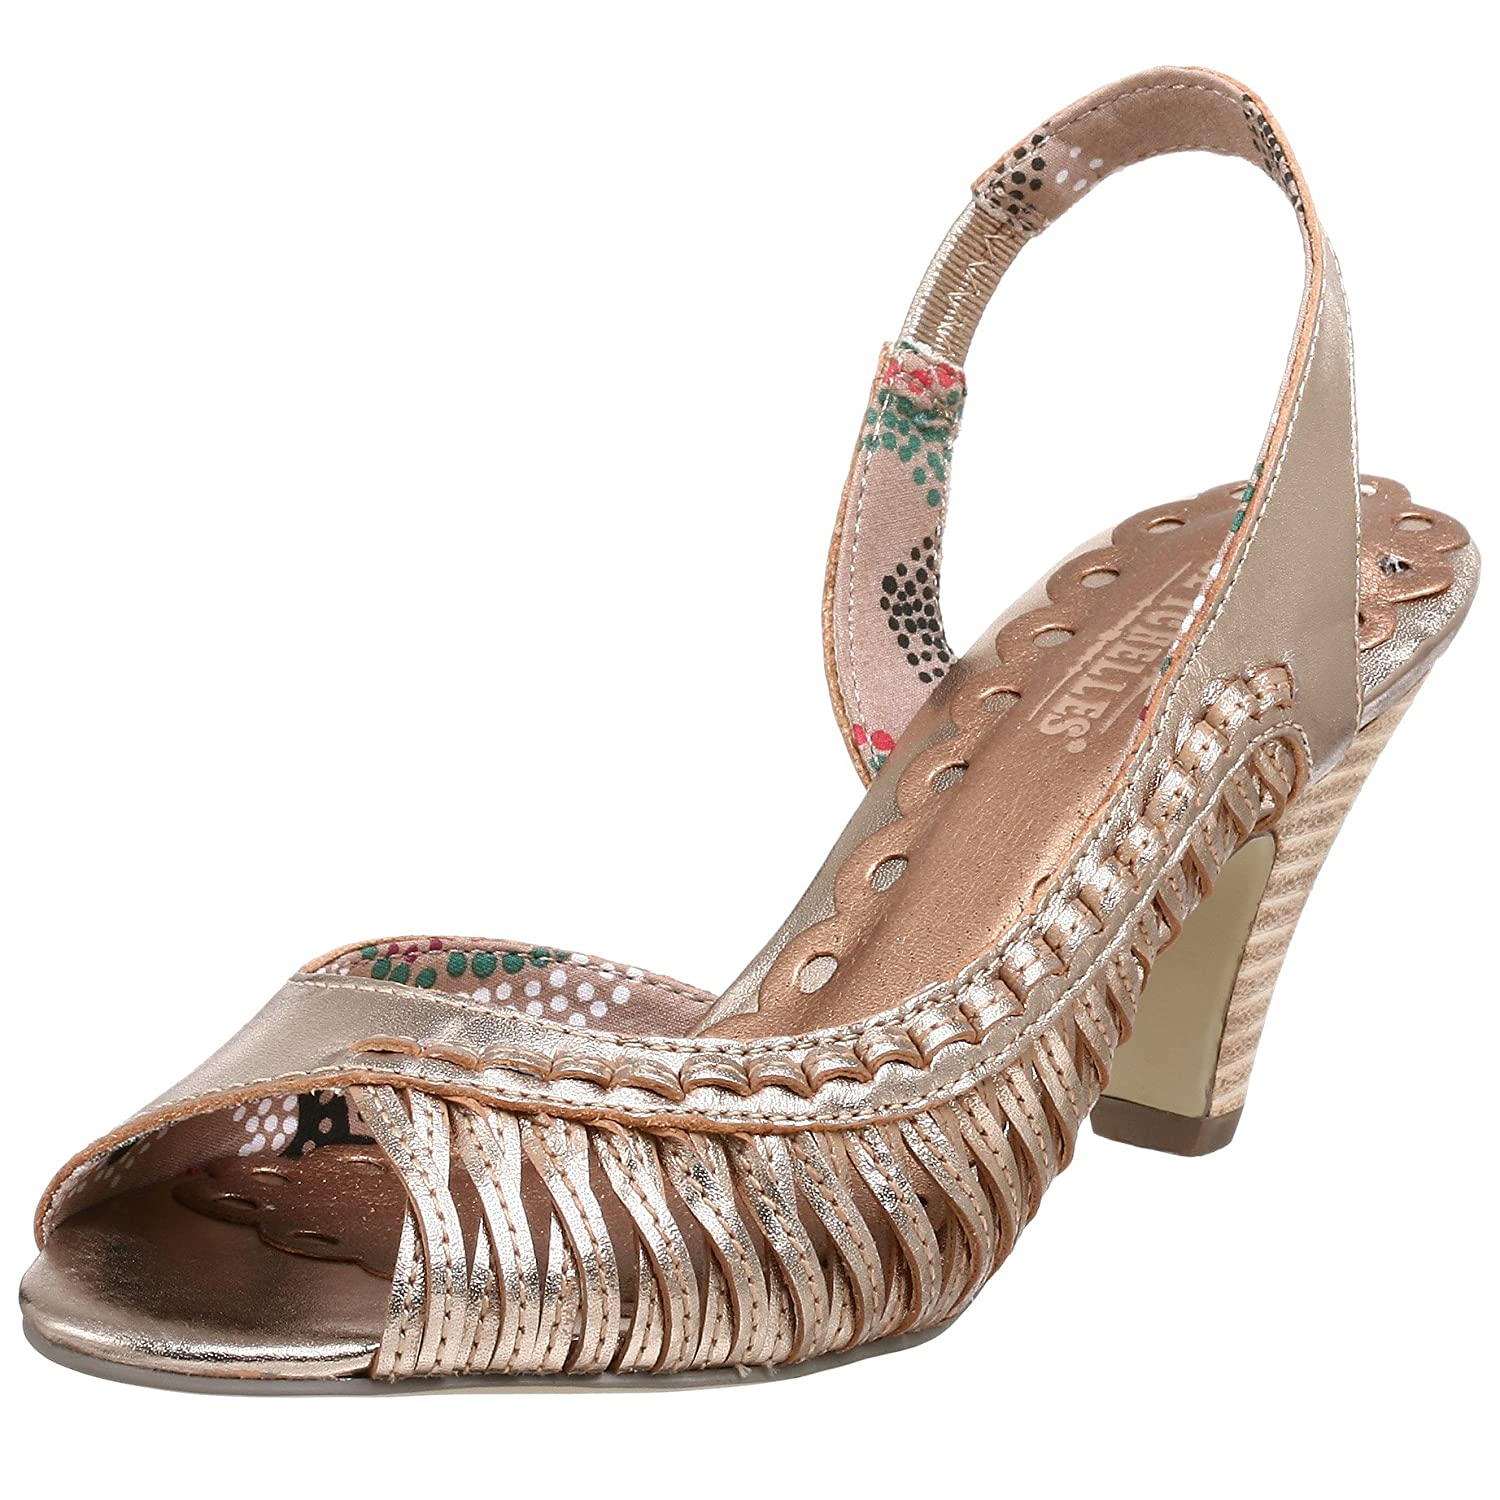 Seychelles Shanti Slingback - Free Overnight Shipping &amp; Return Shipping: Endless.com from endless.com